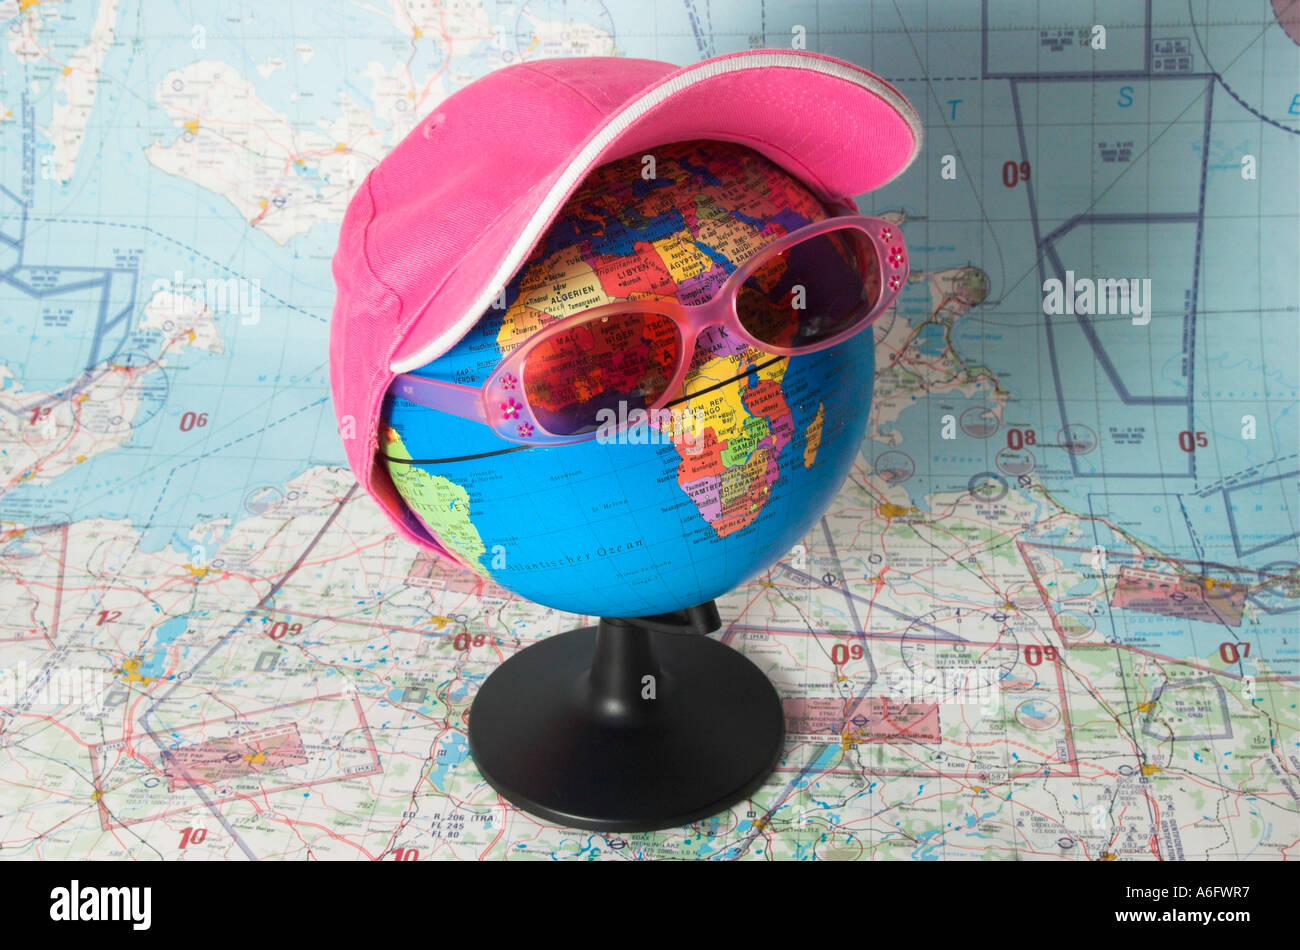 Globe with sunglasses and cap in front of a aeronautical chart, symbol for world-tour and travel - Stock Image